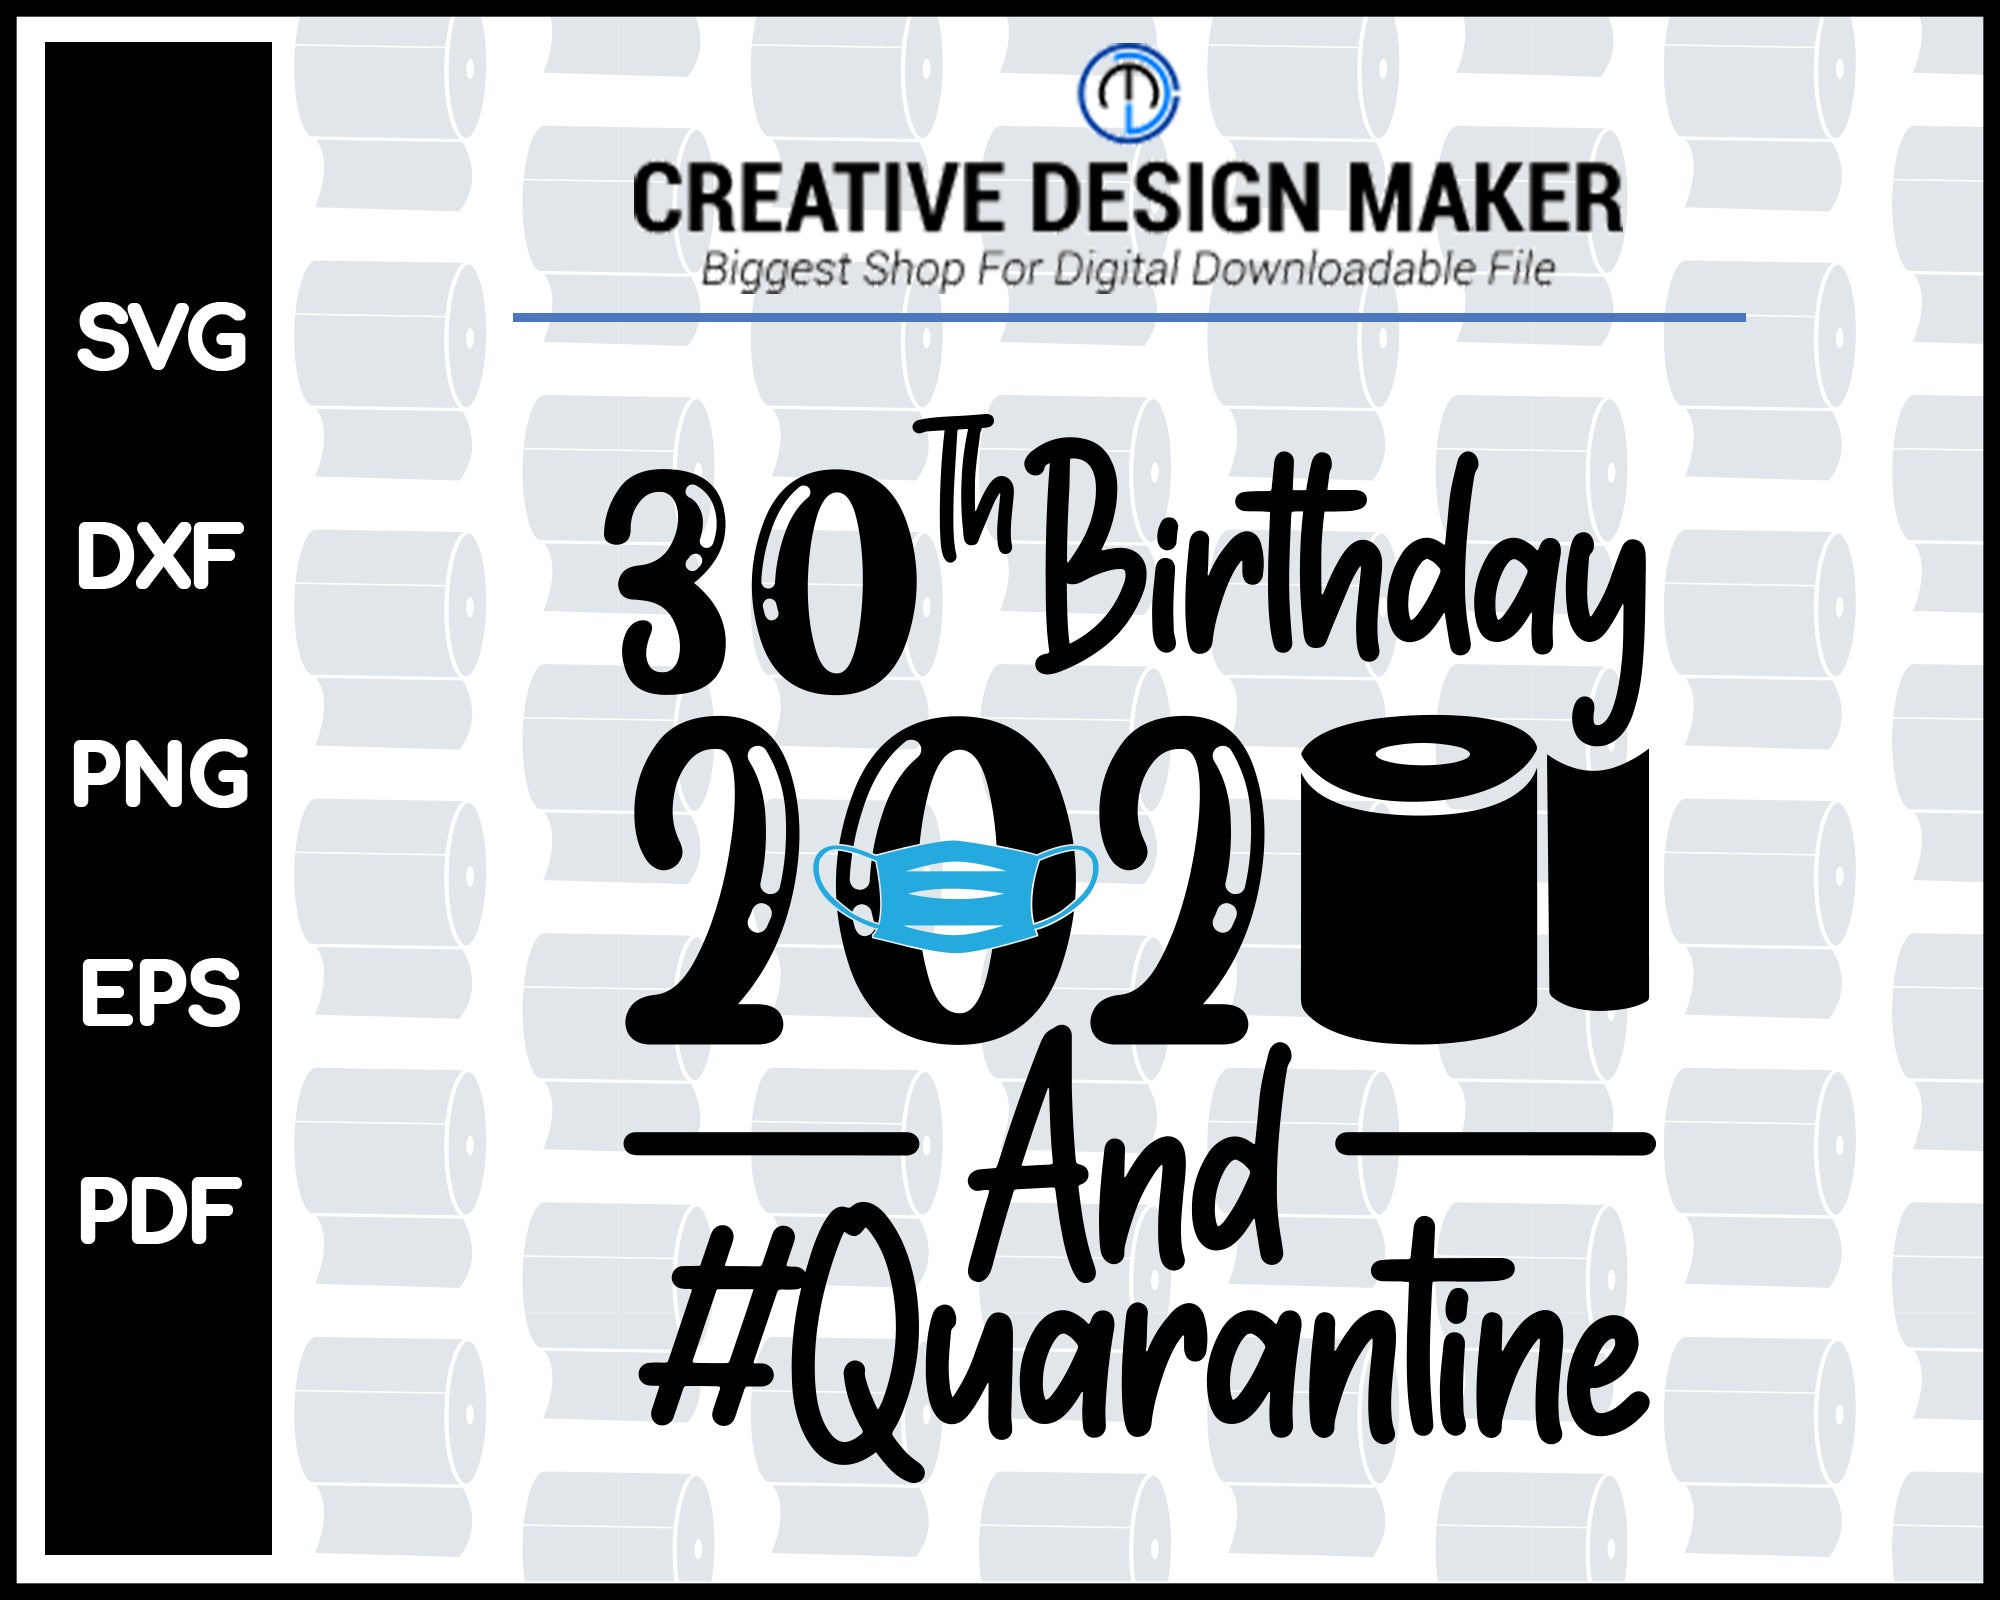 30th Birthday 2020 Quarantined svg For Cricut Silhouette And eps png Printable Artworks